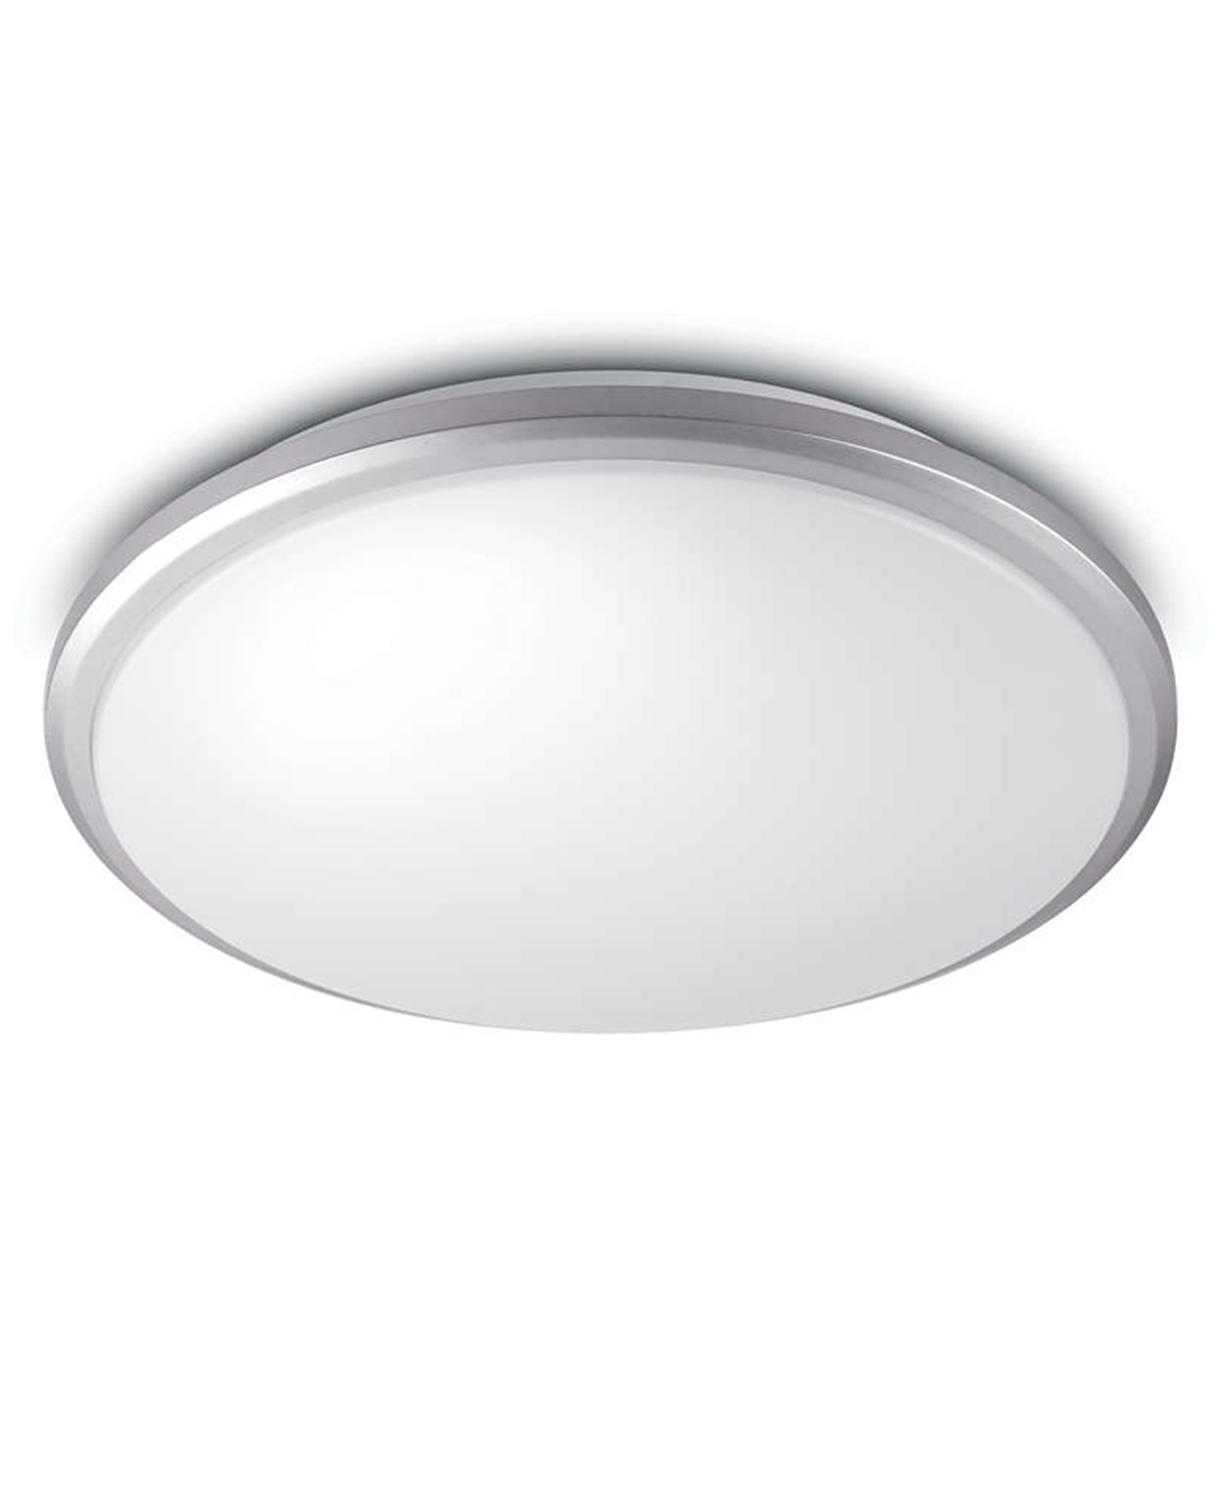 Philips Mybathroom Led Deckenleuchte Guppy 3434687p0 Grau